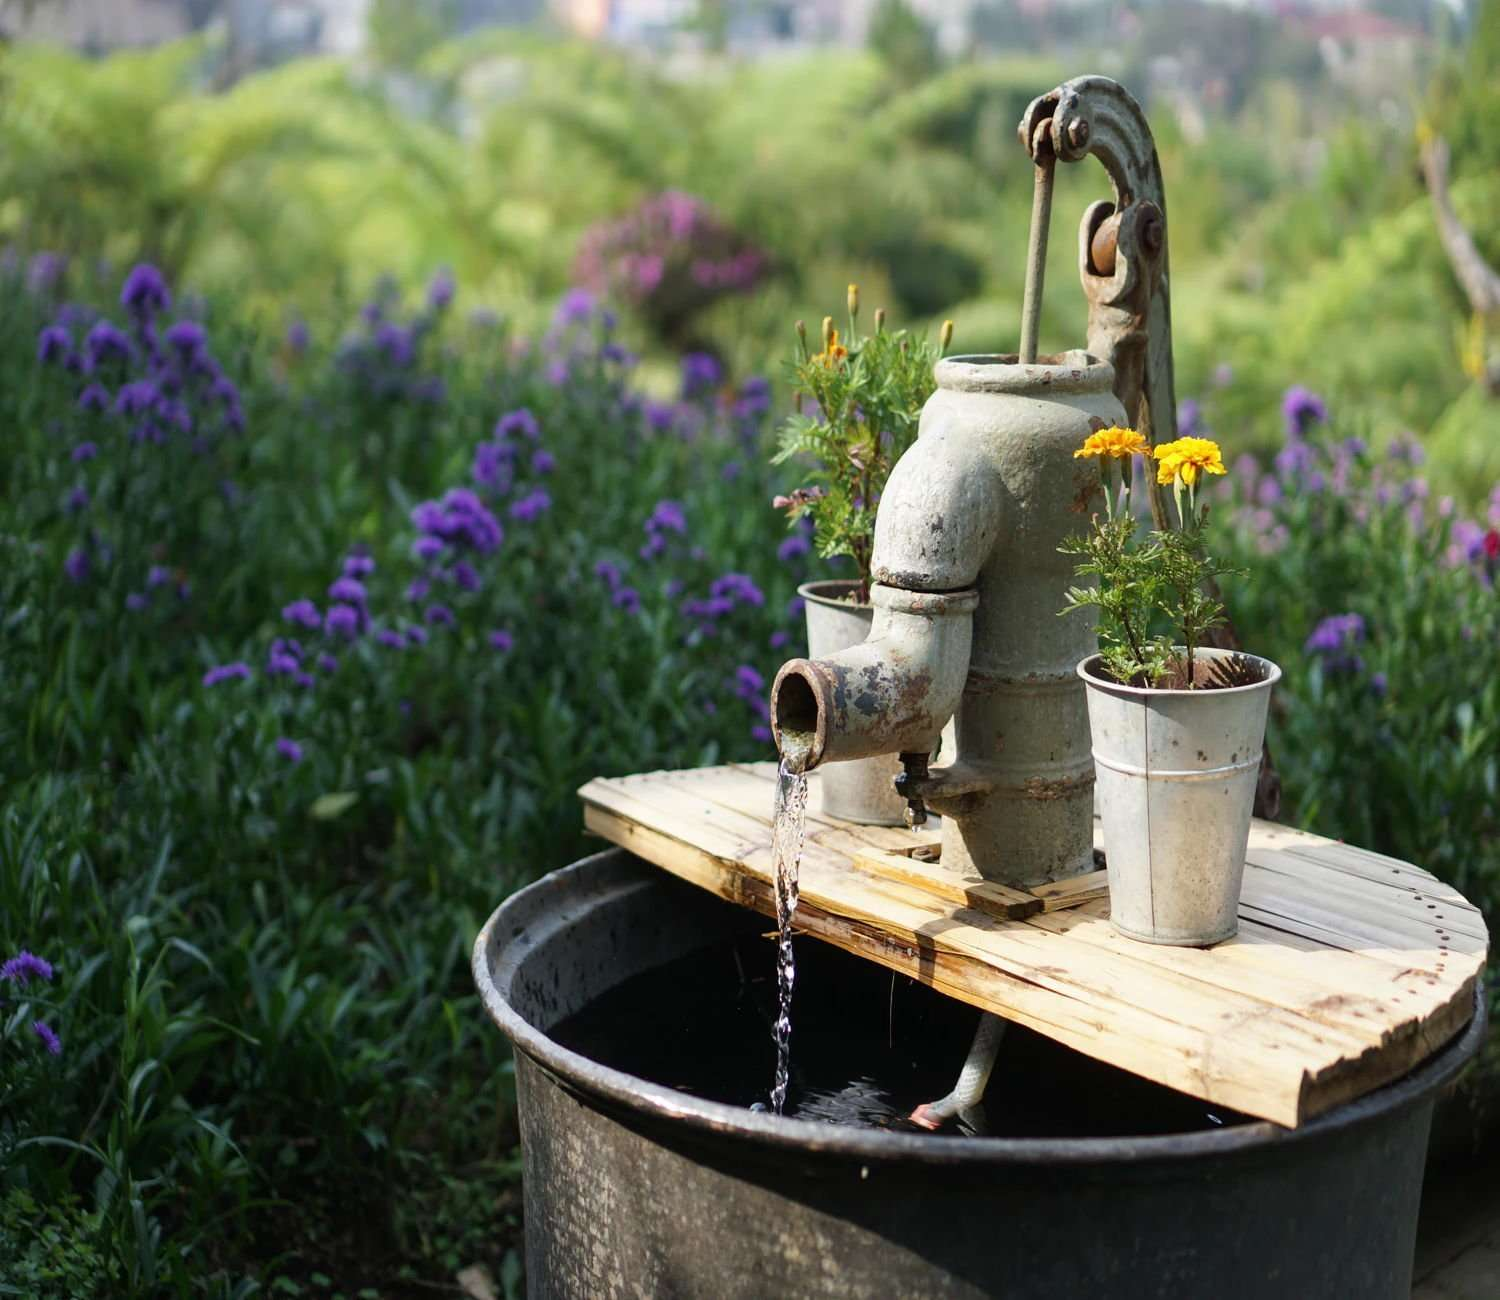 Using an alternative container like a bucket can bring charm to your artificial plants and flowers